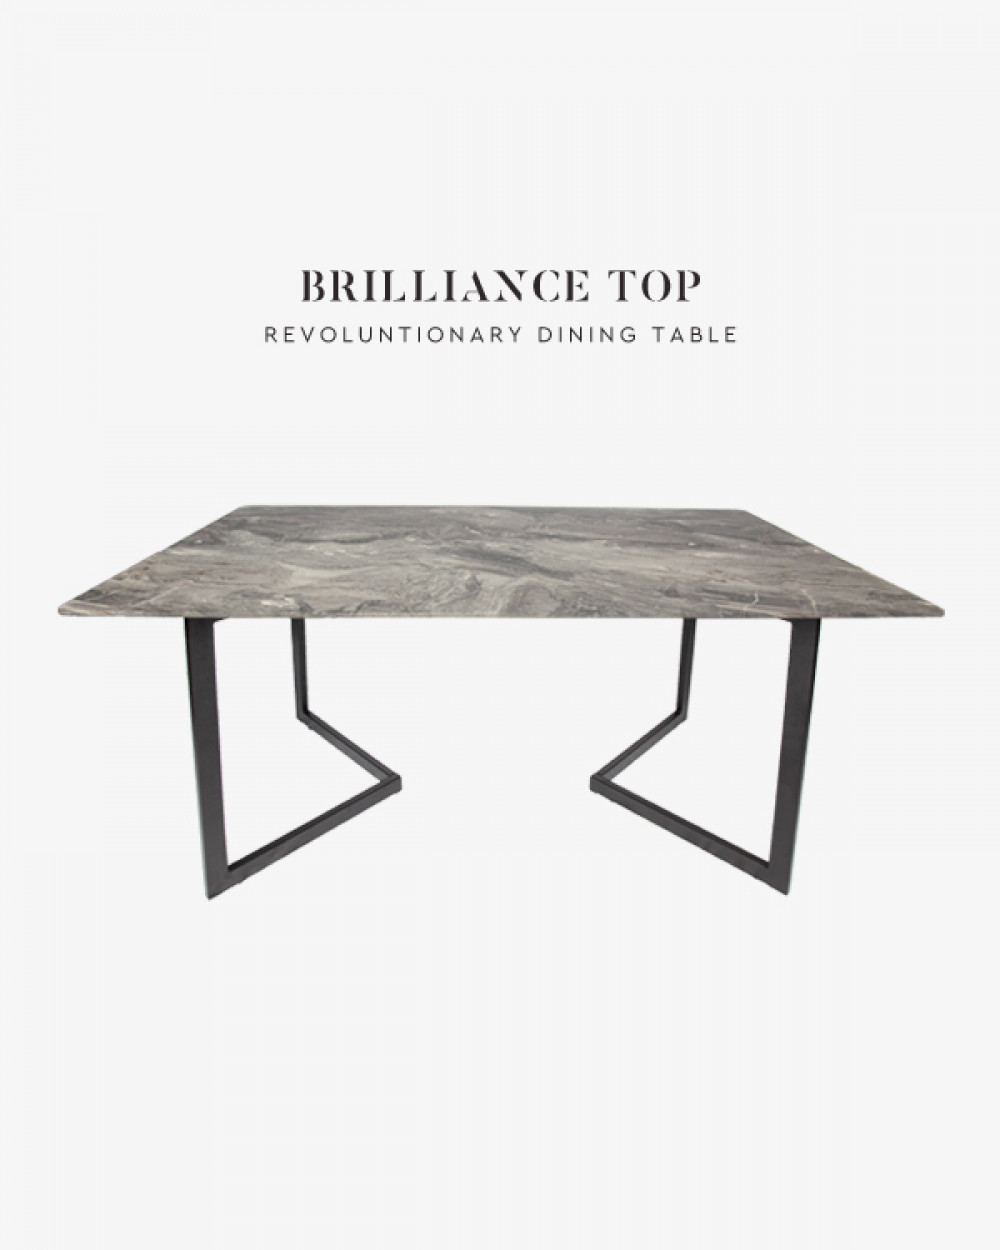 Brilliance Top | Brampton Dining Table